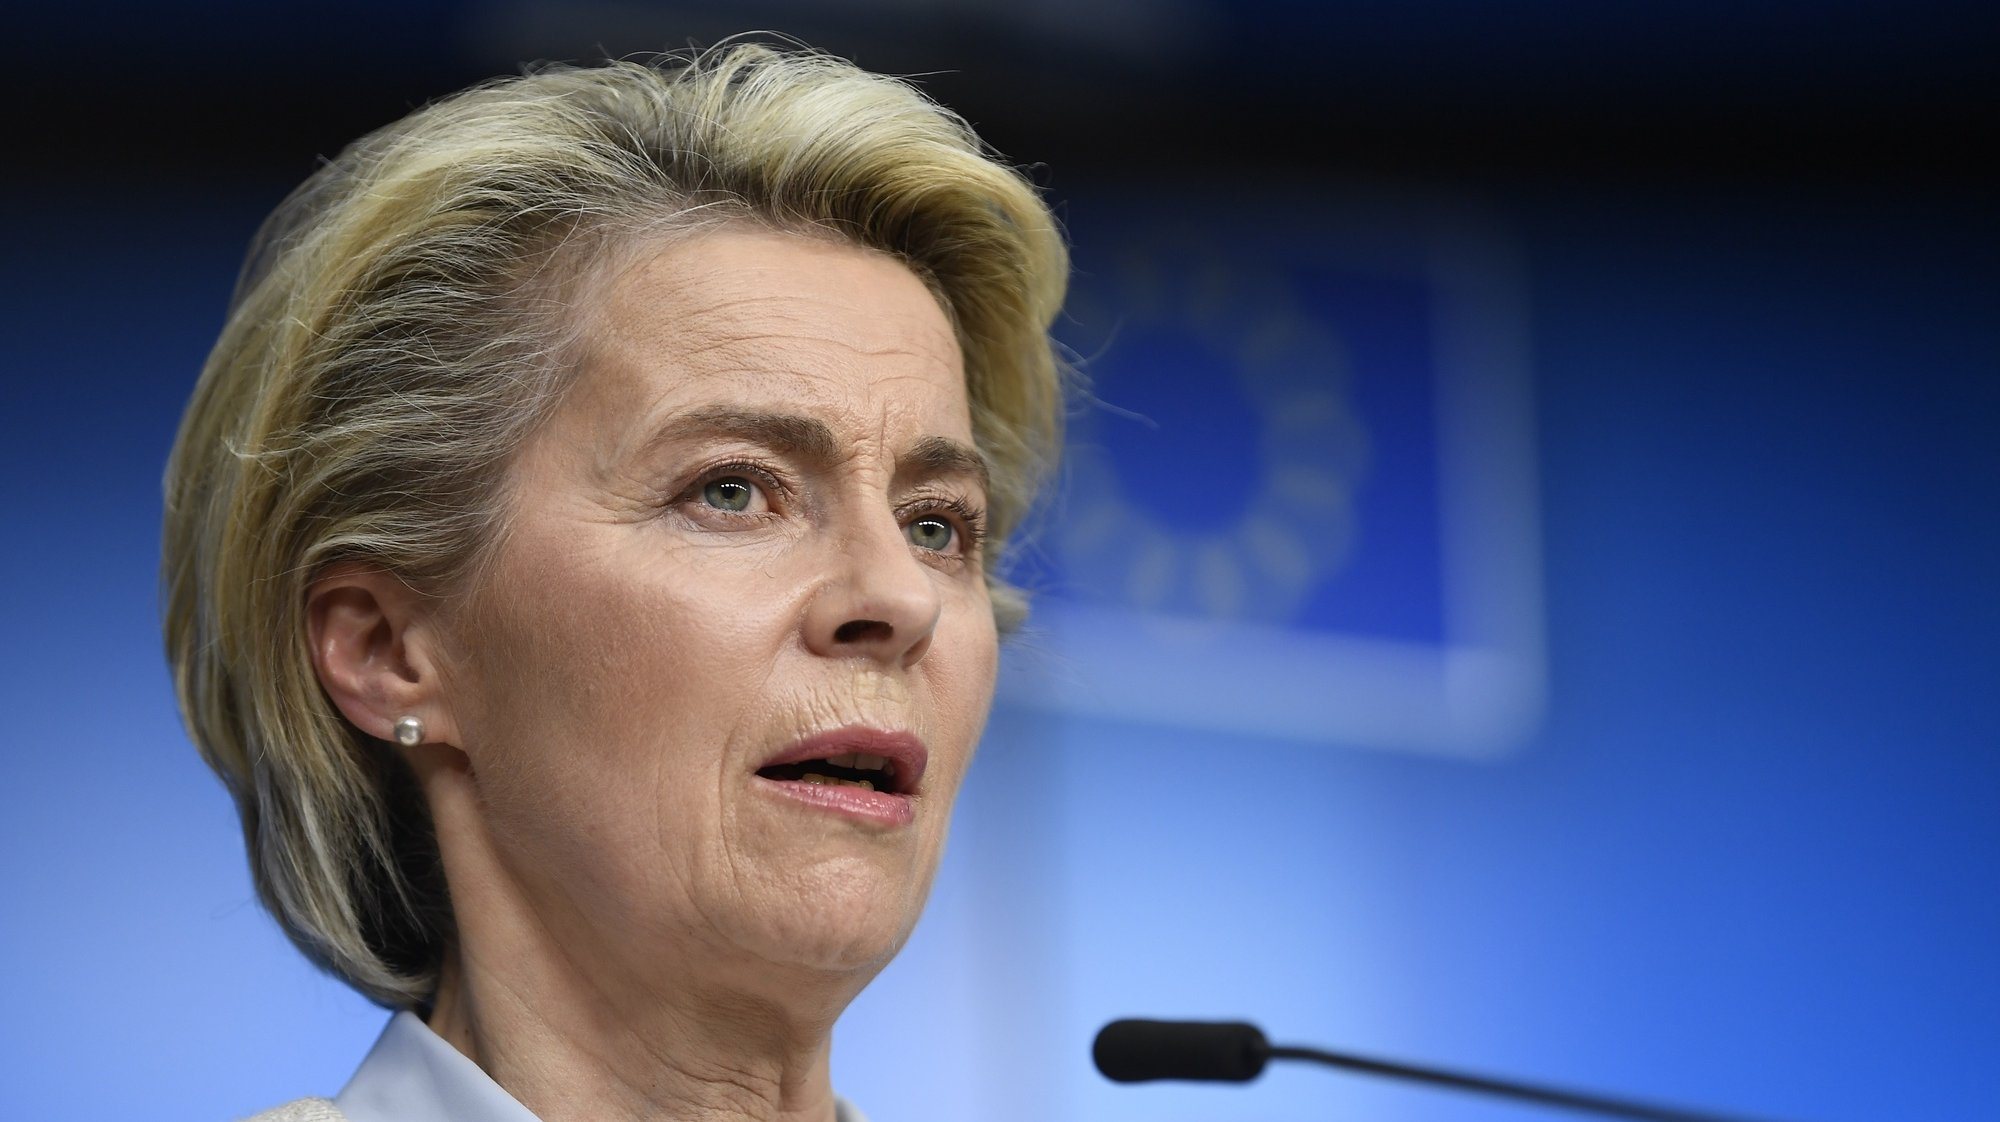 epa09225954 President of the European Commission Ursula von der Leyen speaks during a press conference at the EU summit at the European Council building in Brussels, Belgium, 24 May 2021. European Union leaders will take part in a two day in-person meeting to discuss the coronavirus pandemic, climate change and Russia.  EPA/JOHN THYS / POOL